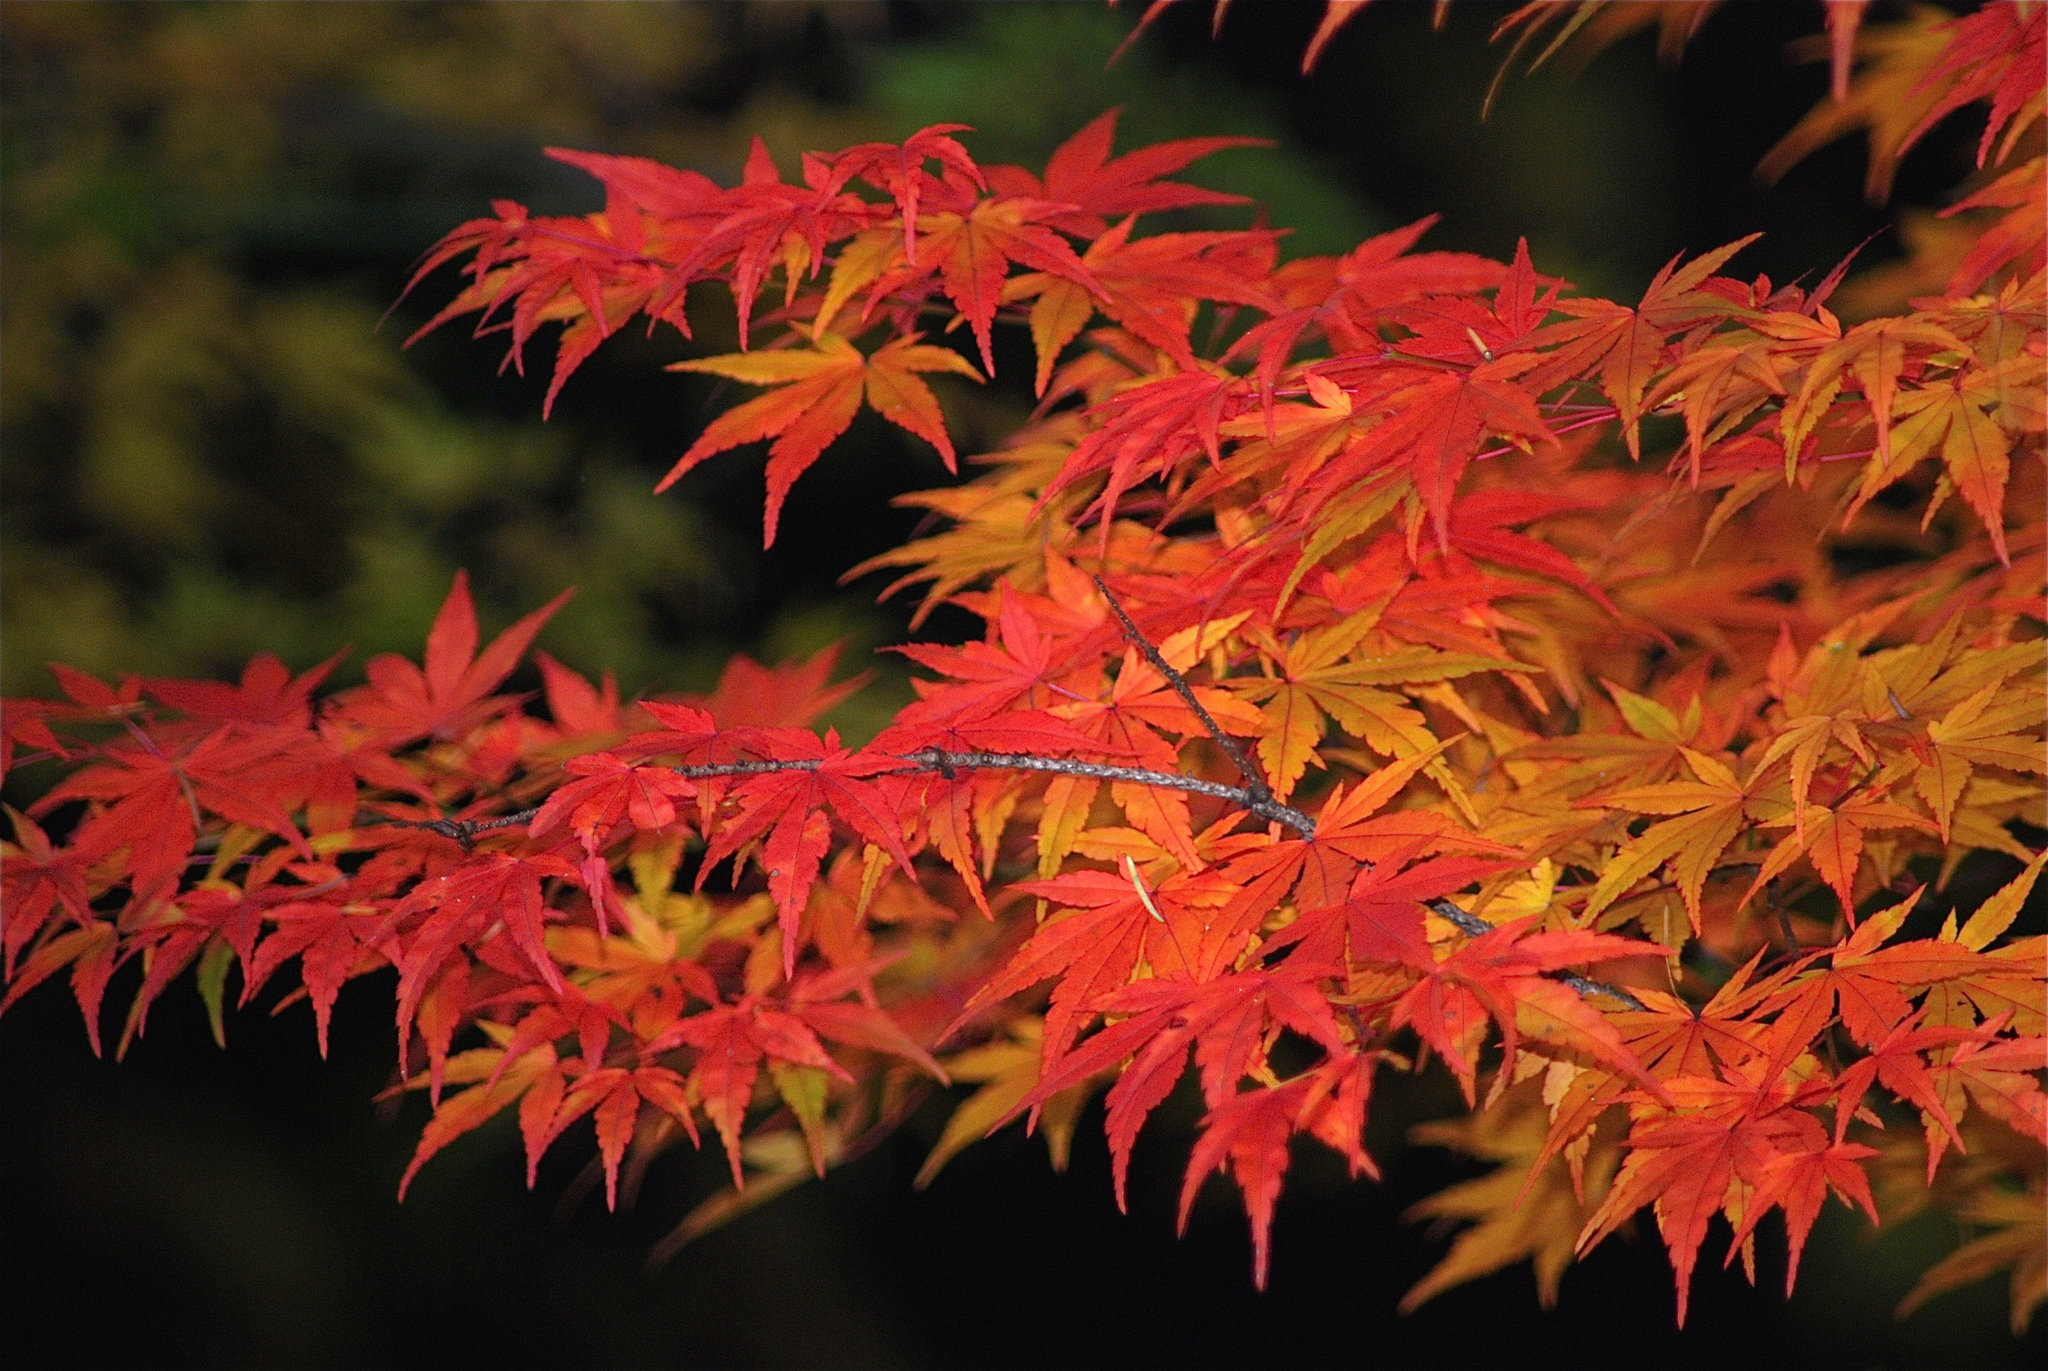 Maple Leaf Wallpaper For Fall Season The Autumn Leaf Color Season In The Pacific Northwest May